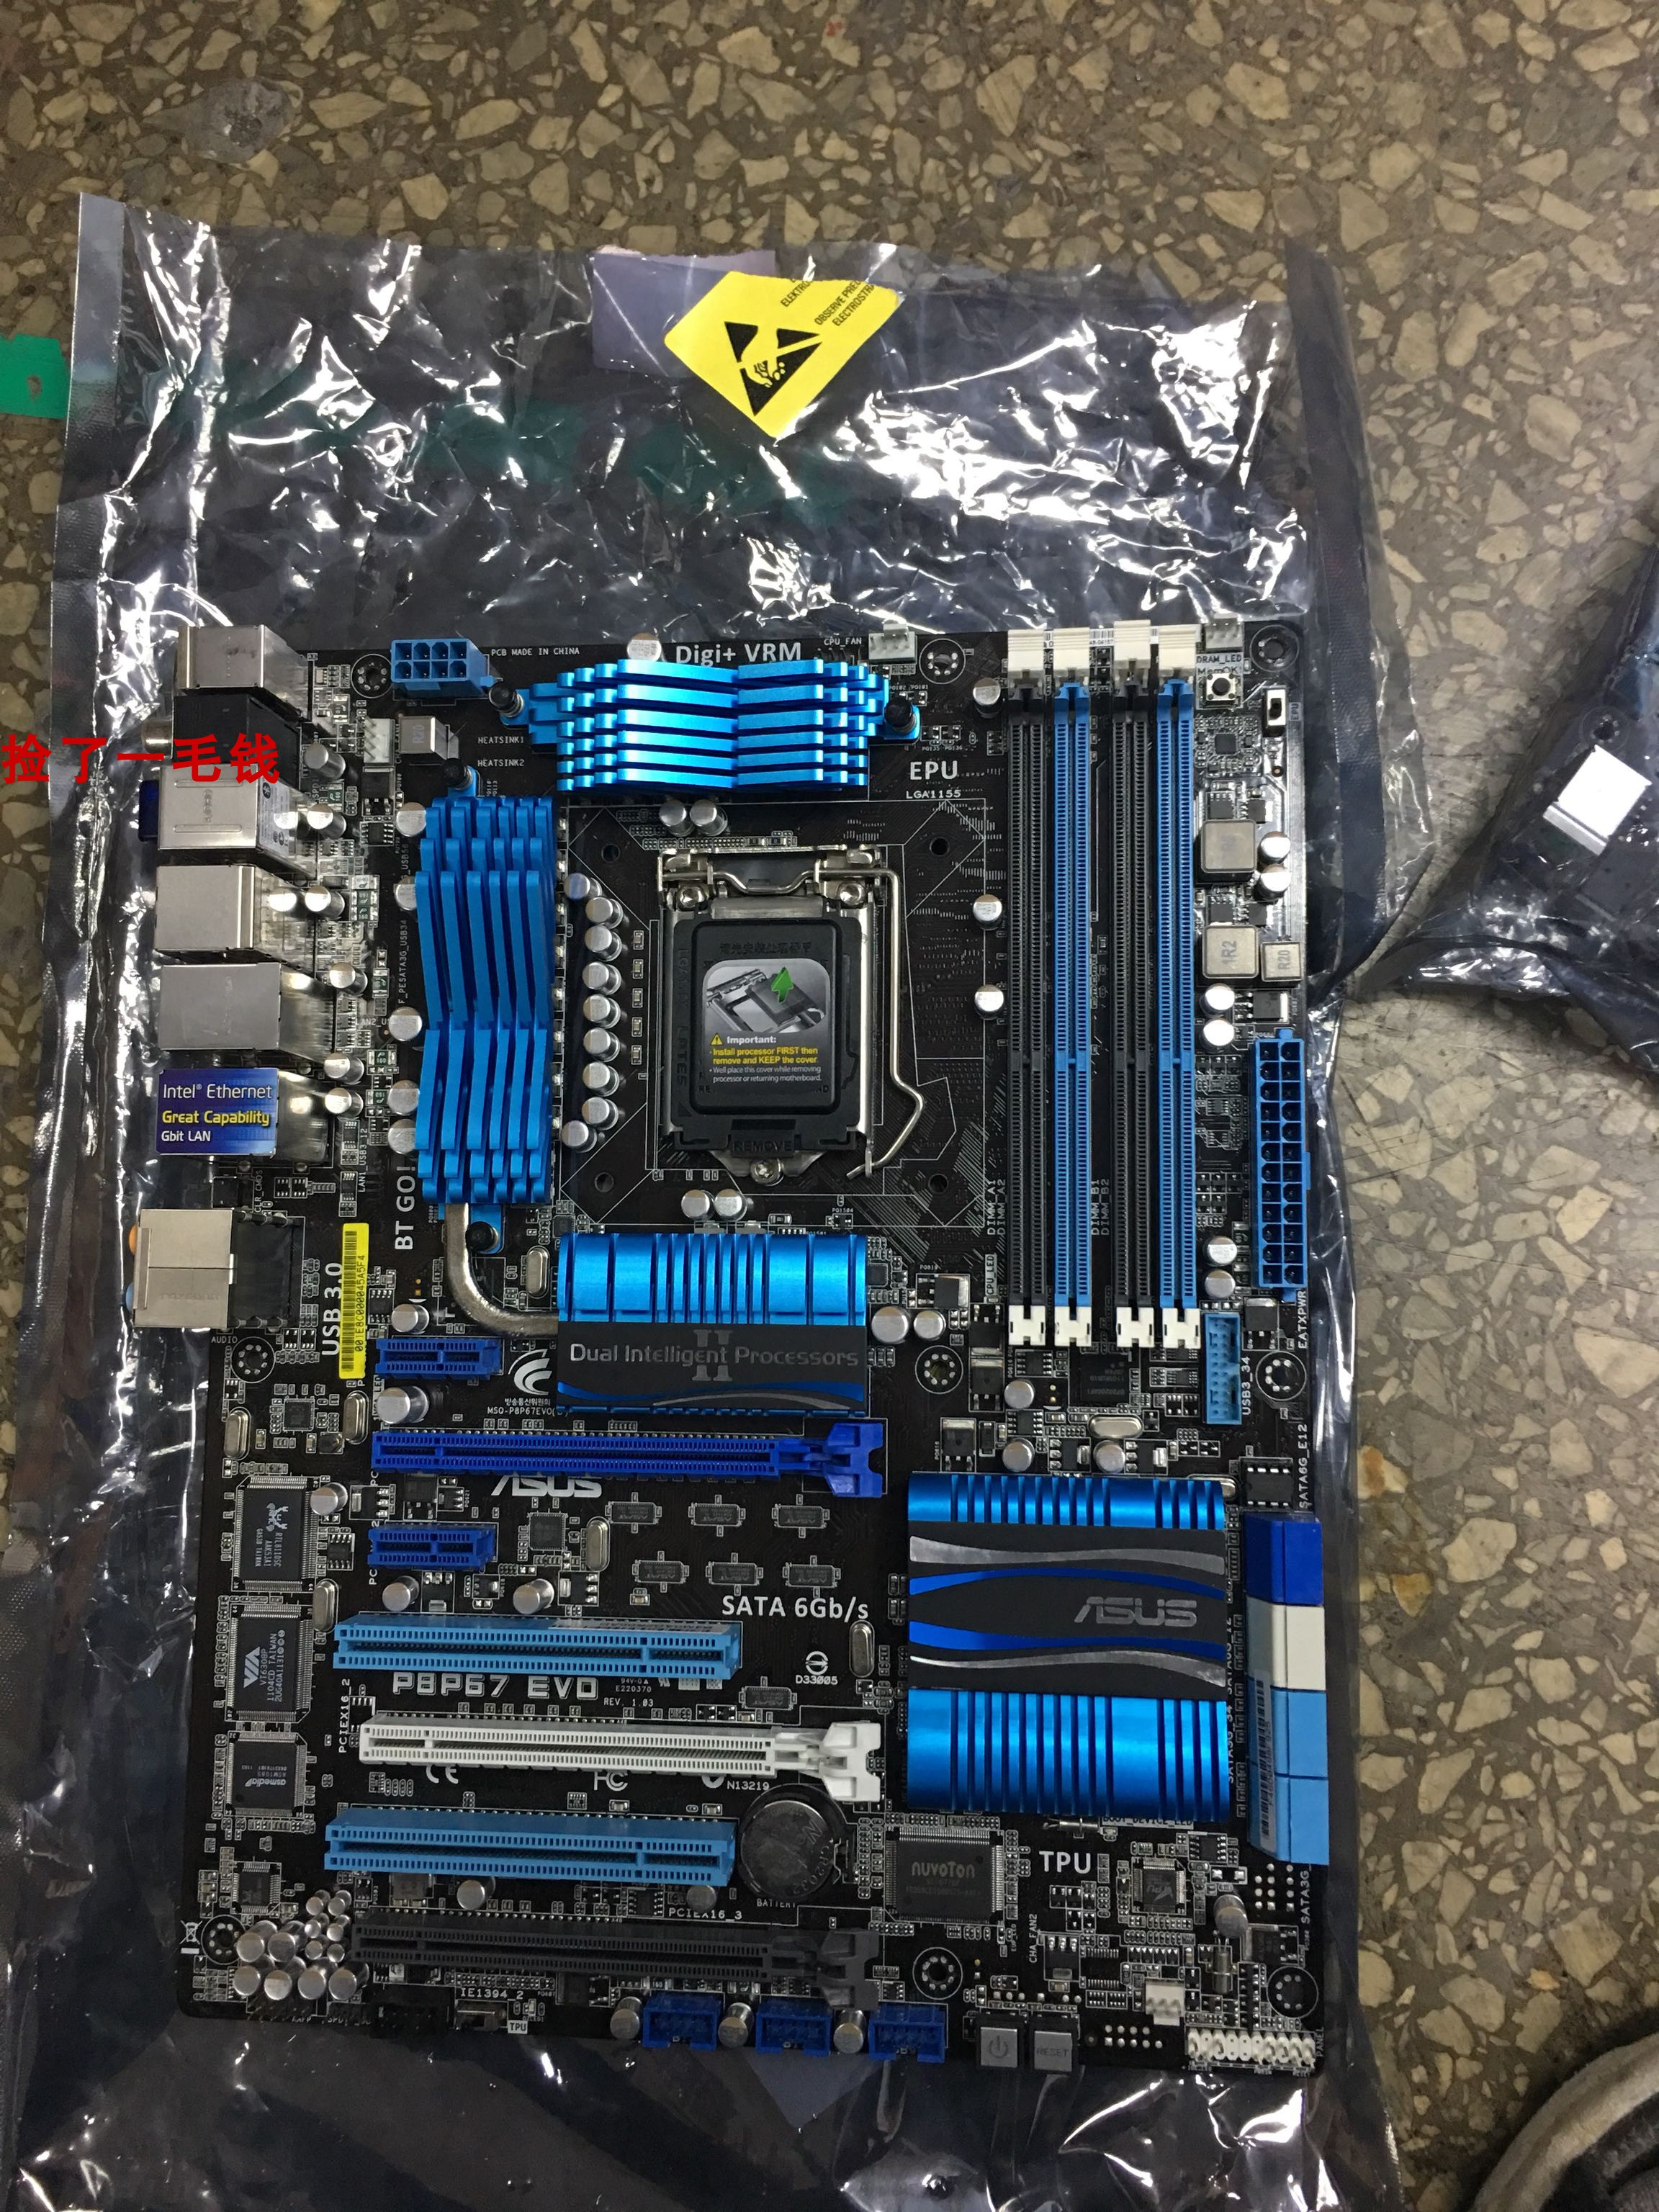 Asus Asus p8p67 EVO B3 version 1155cpu support overclocking spot Orange good